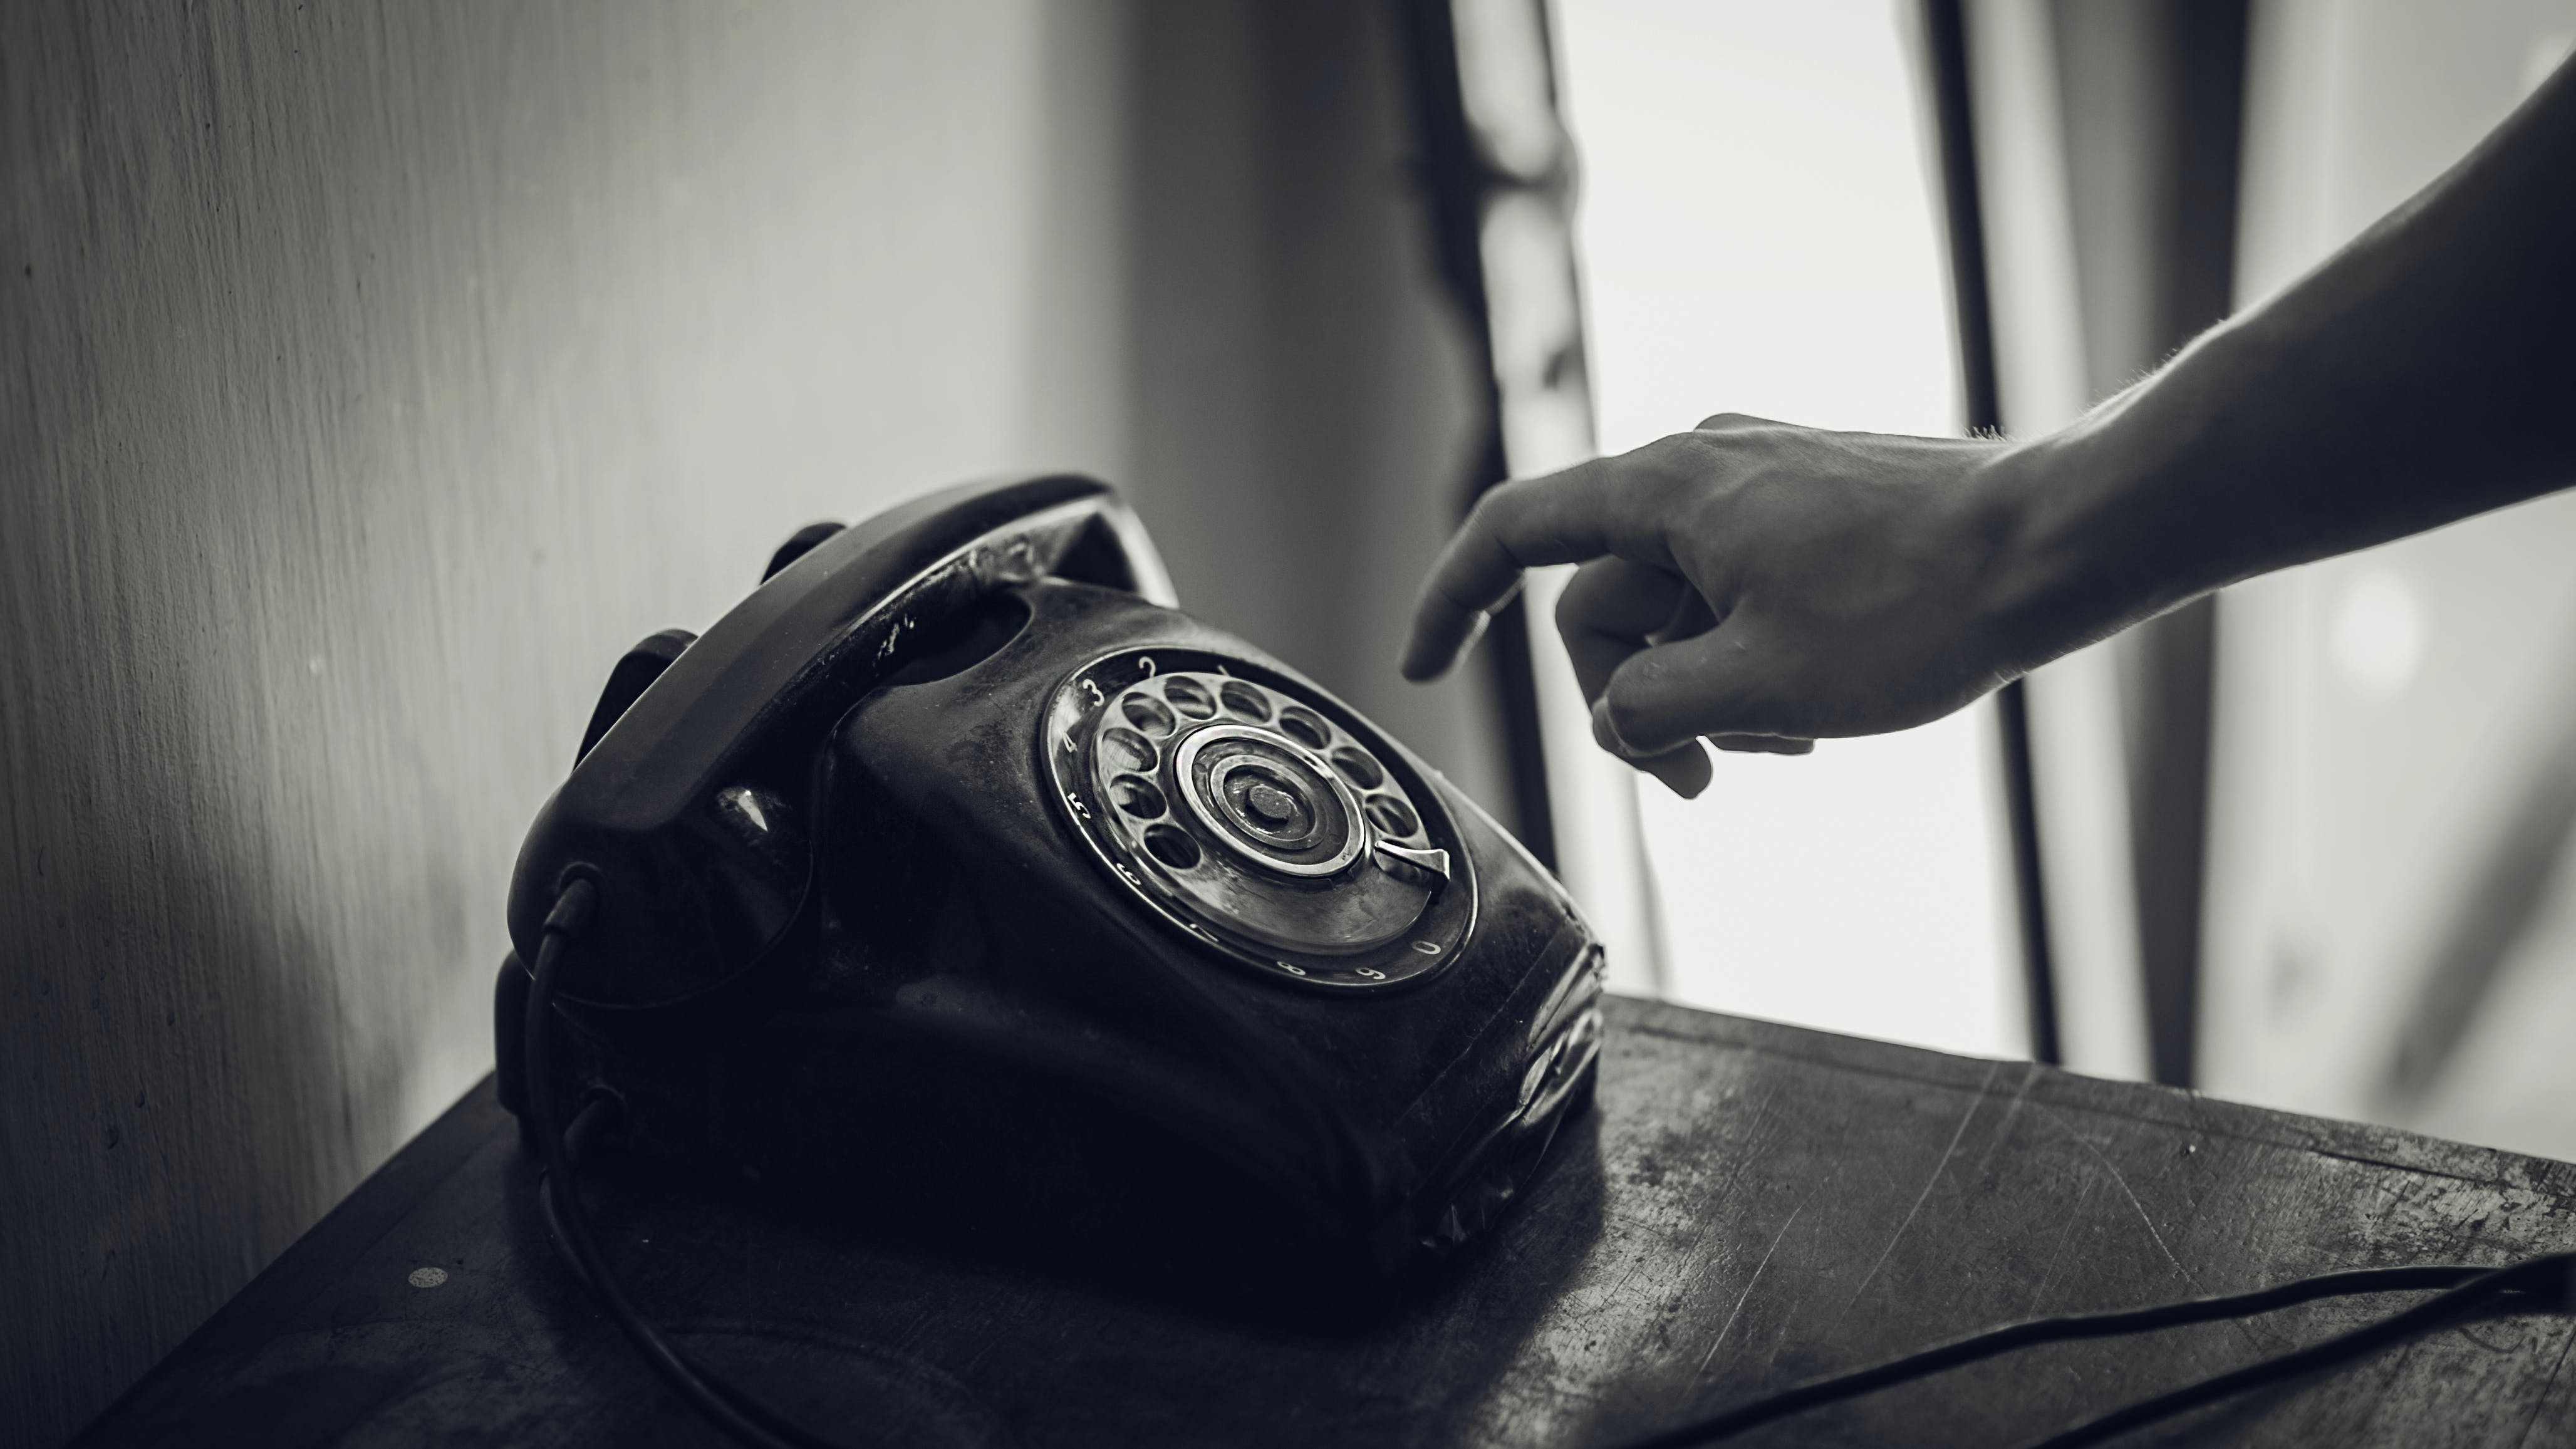 Grayscale Photo of Rotary Telephone Beside Person Hand